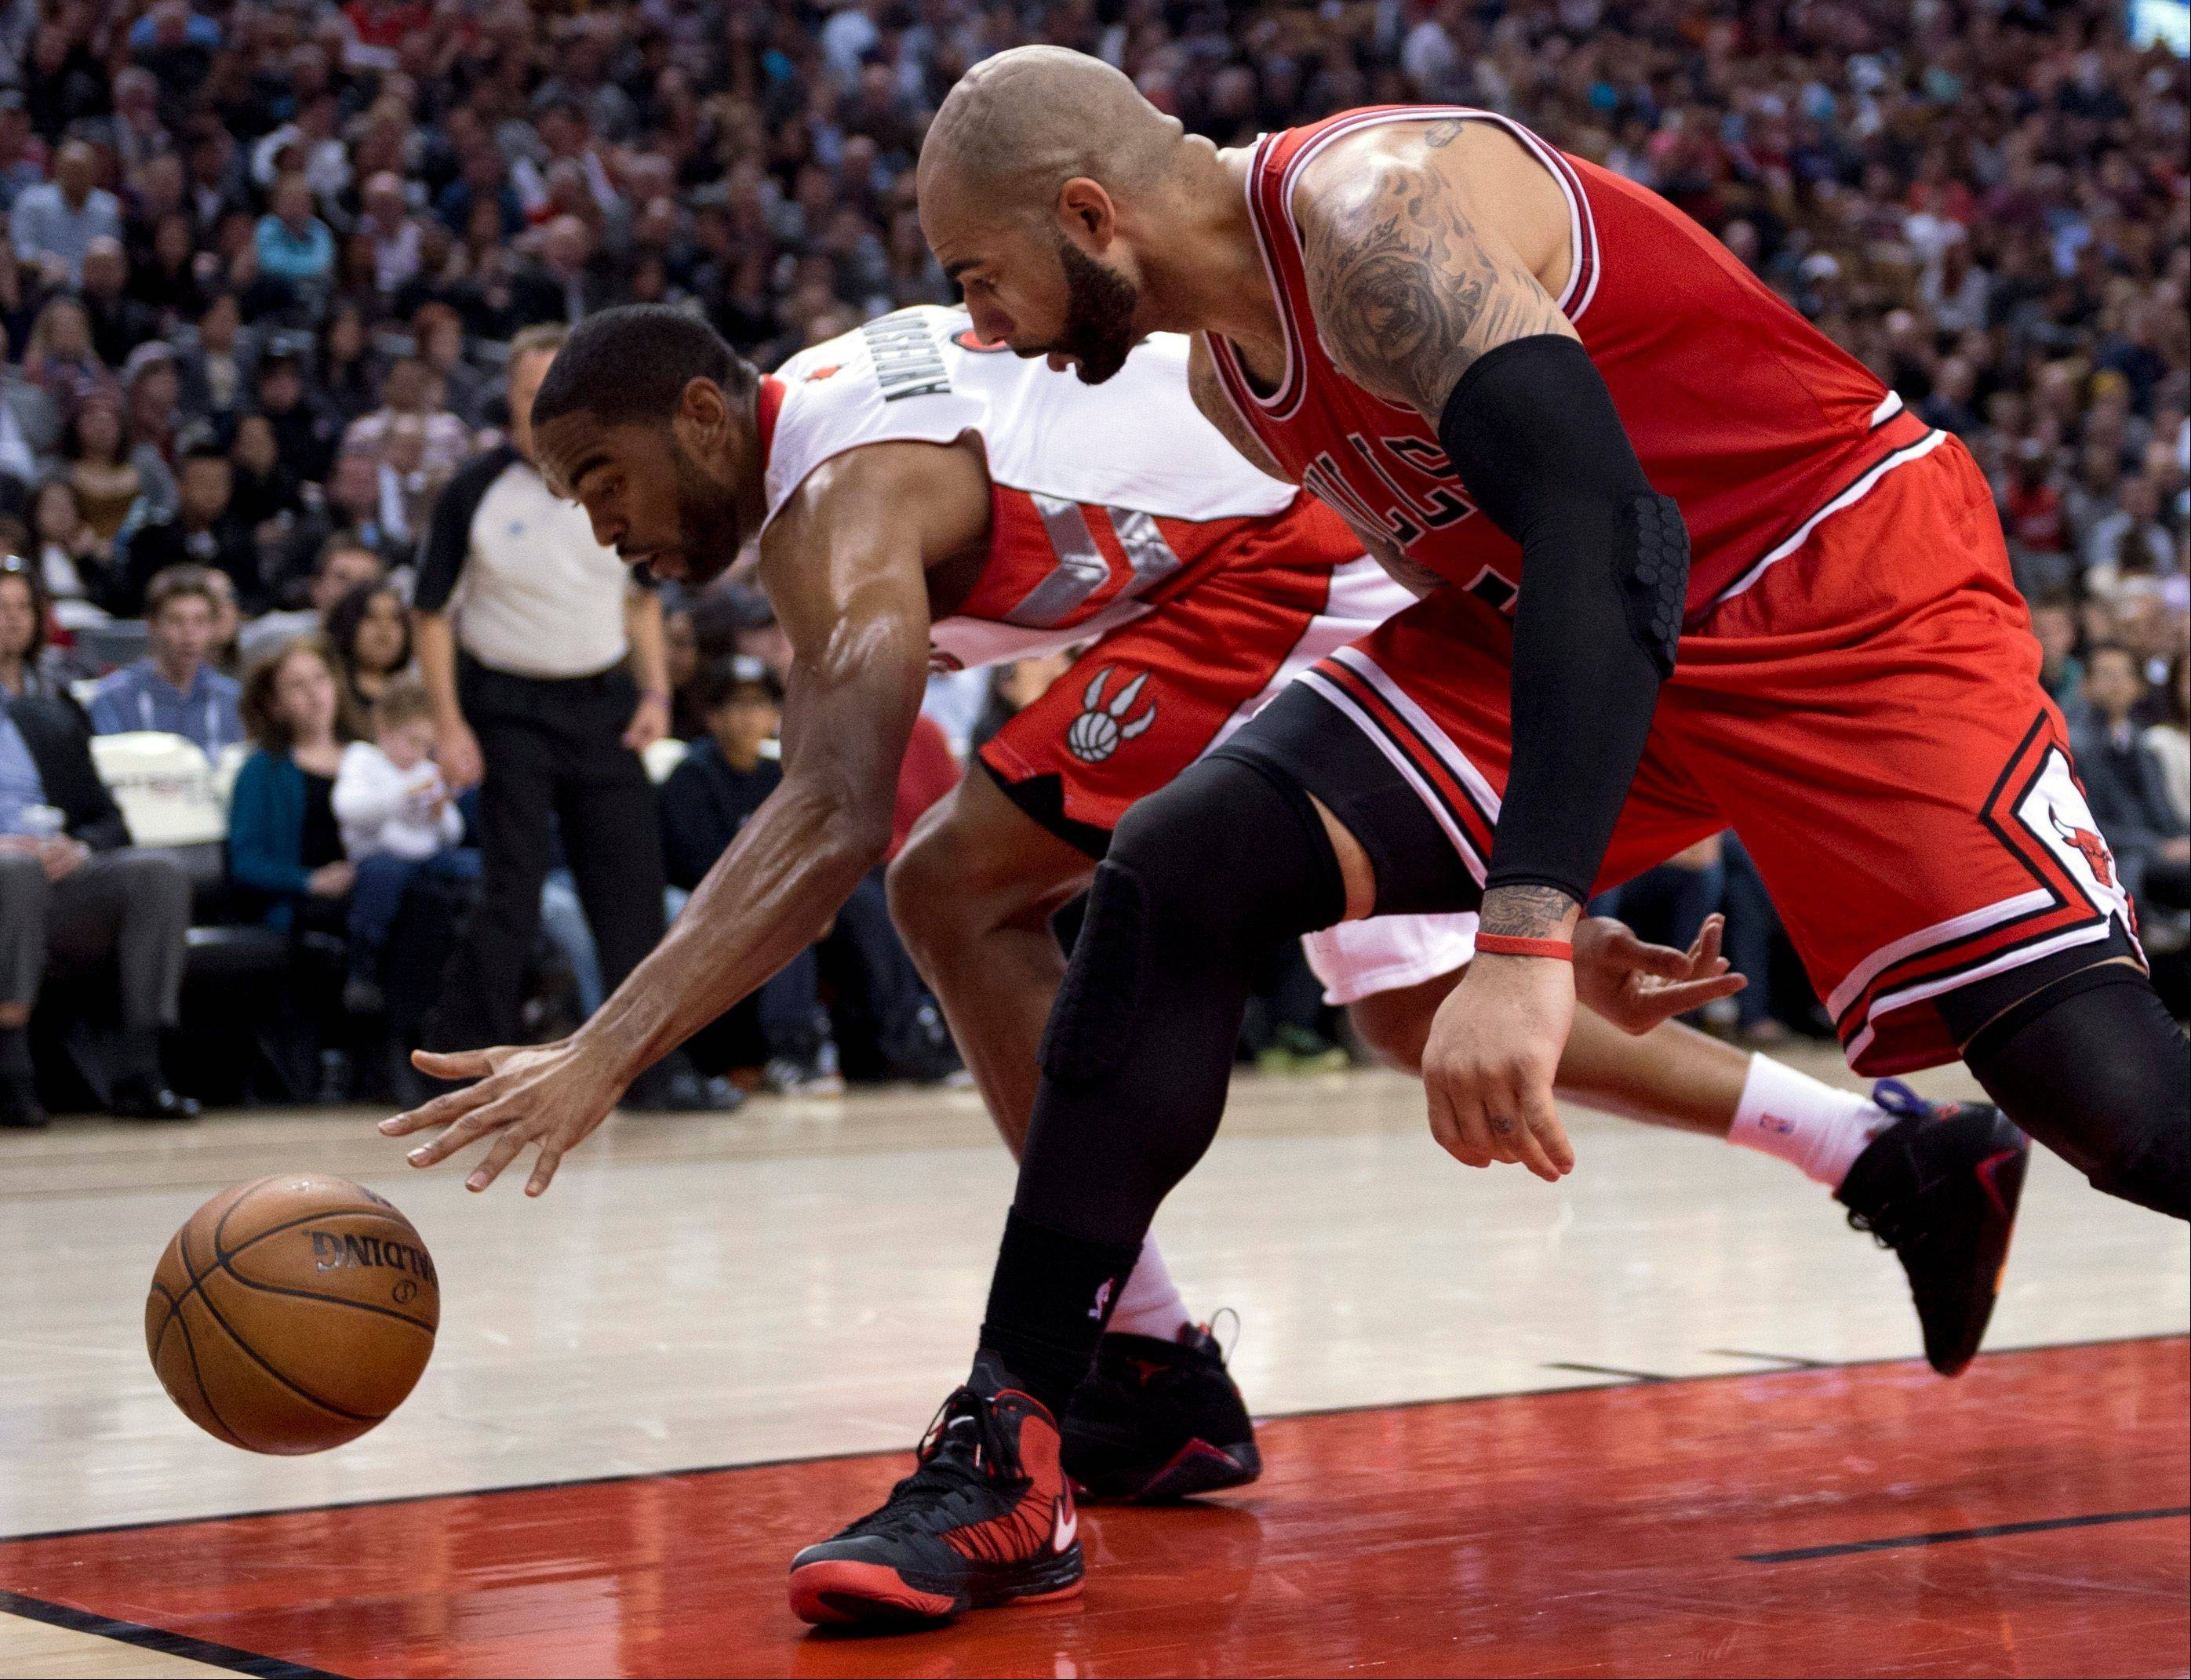 Toronto Raptors forward Alan Anderson and Chicago Bulls forward Carlos Boozer, right, chase down the loose ball during the first half NBA basketball game in Toronto on Friday, April 12, 2013. (AP Photo/The Canadian Press, Frank Gunn)